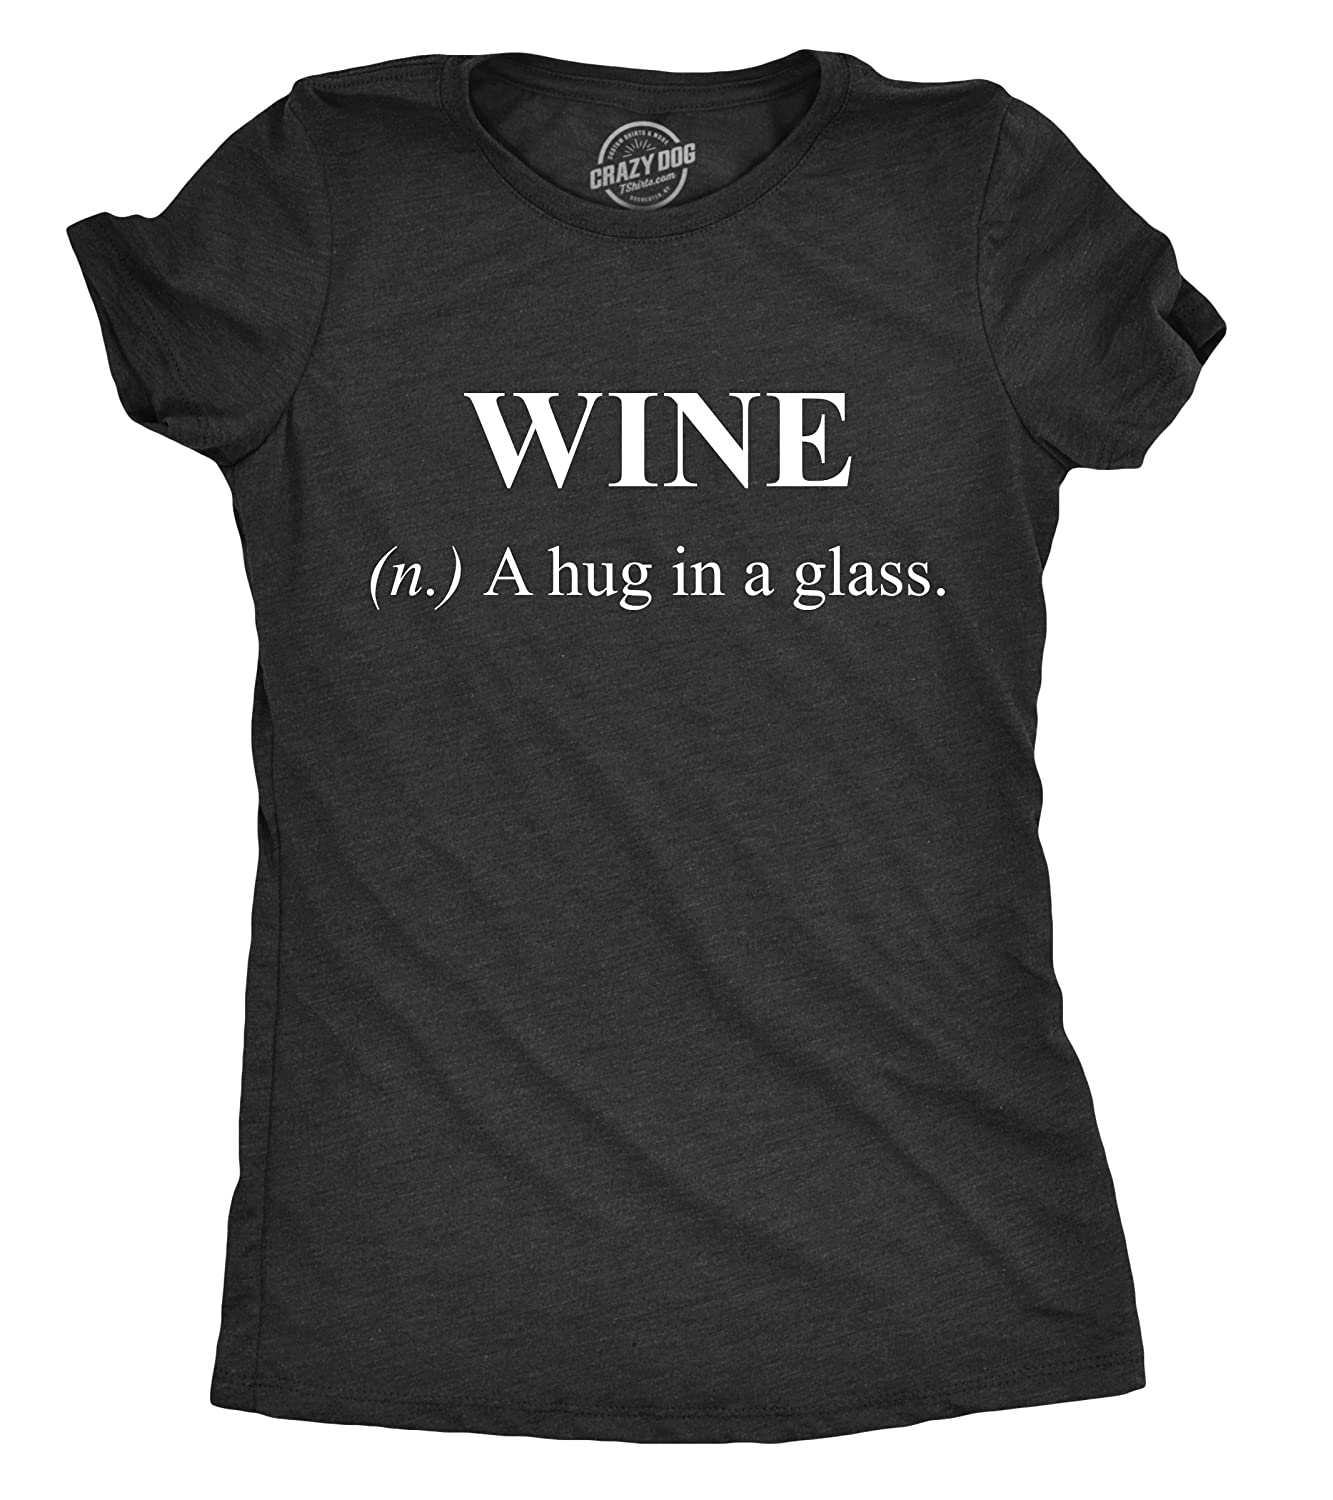 2cd9e38b Amazon.com: Womens Wine A Hug in A Glass Tshirt Funny Drinking Tee for  Ladies: Clothing